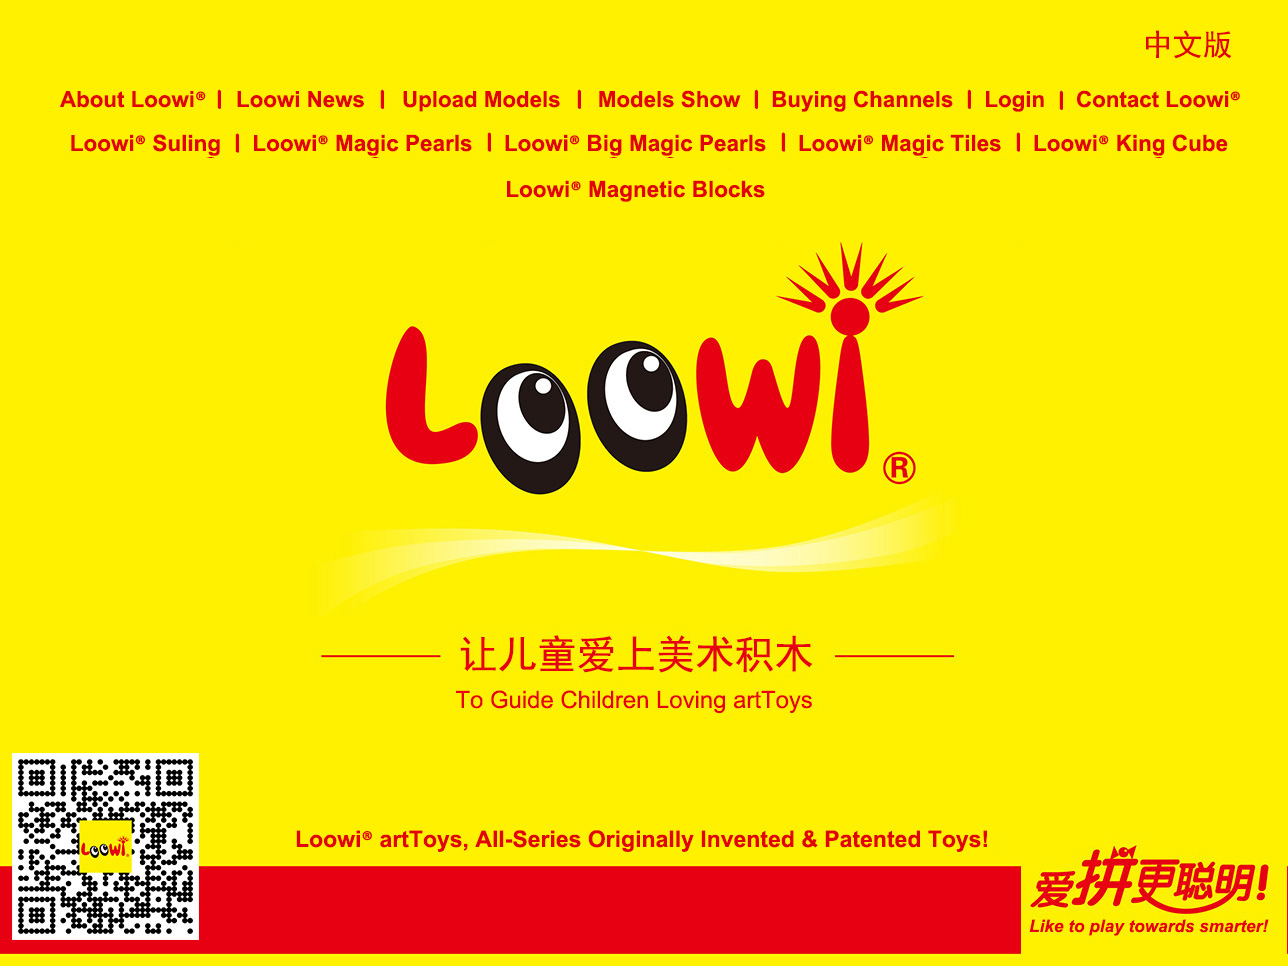 Loowi's Mission, To Guide Children Loving artToys!